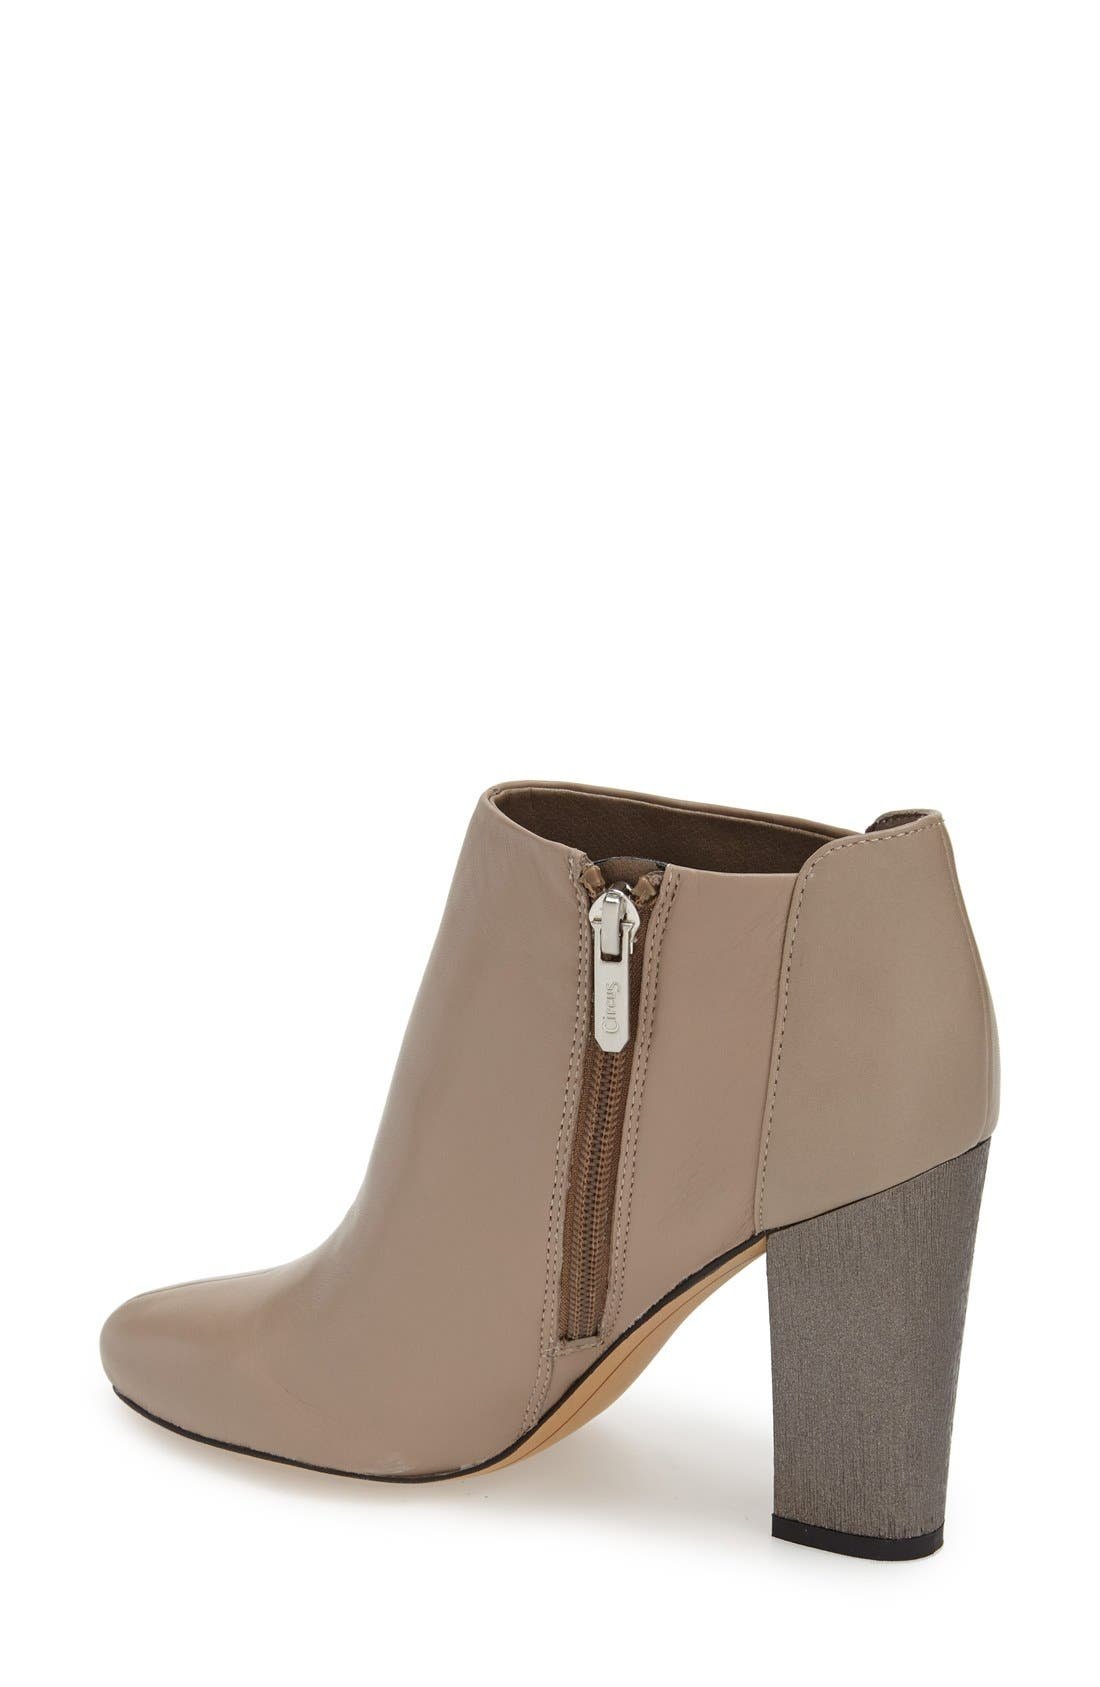 Alternate Image 3  - Circus by Sam Edelman 'Bond' Bootie (Women)